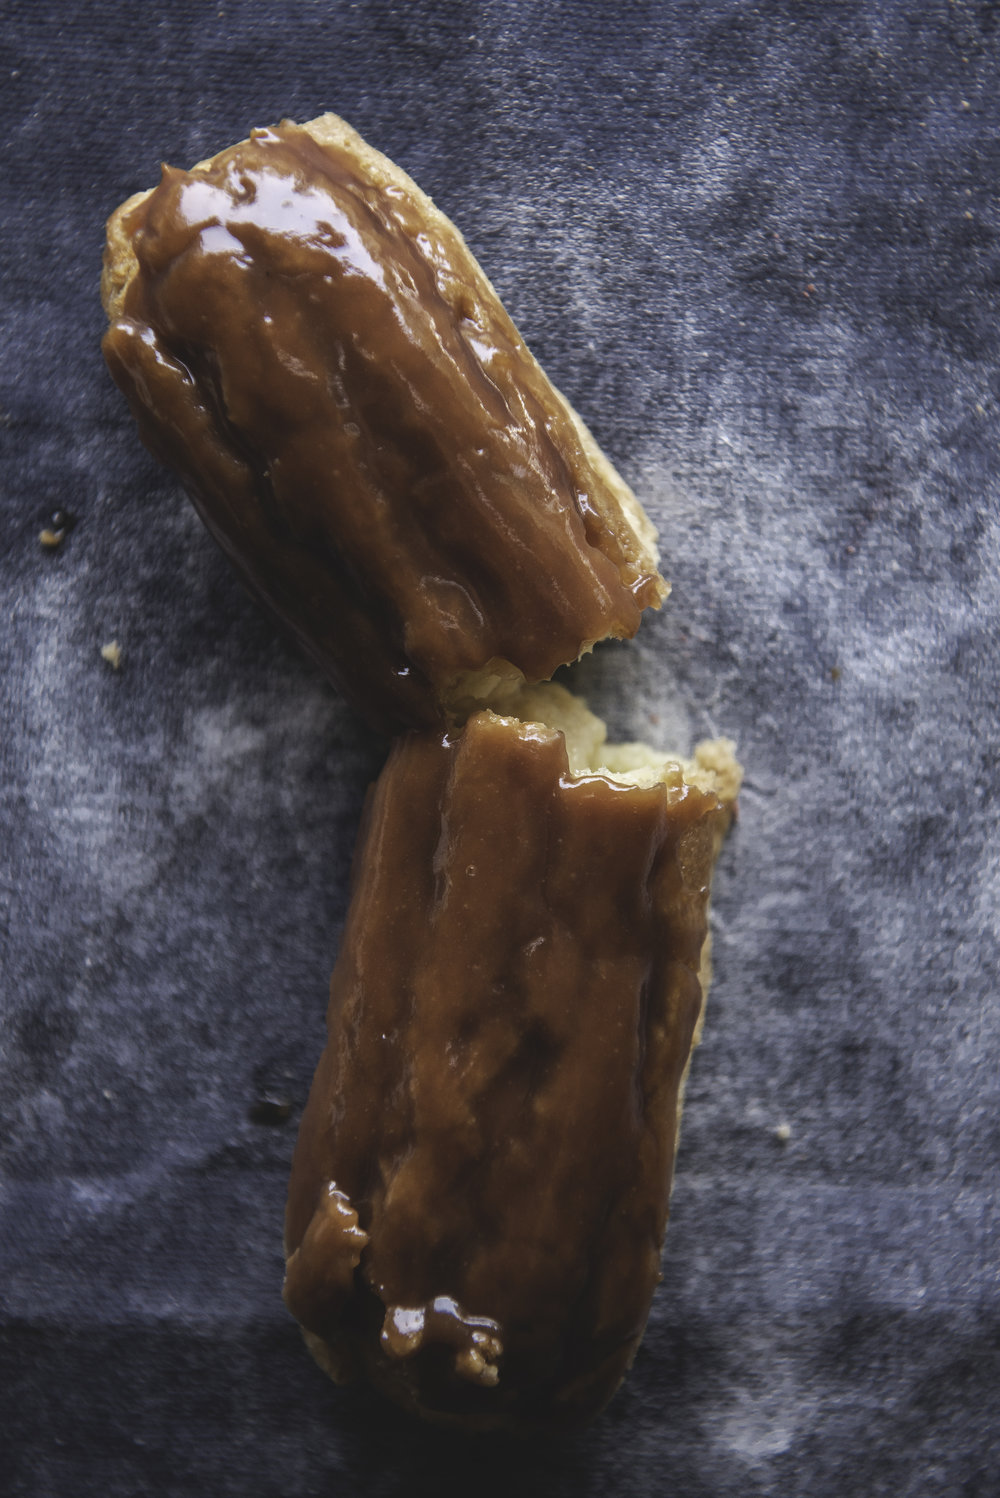 Butterscotch Eclair - Handmade butterscotch sauce is whipped into a classic pastry cream for a lightly sweet petite treat.